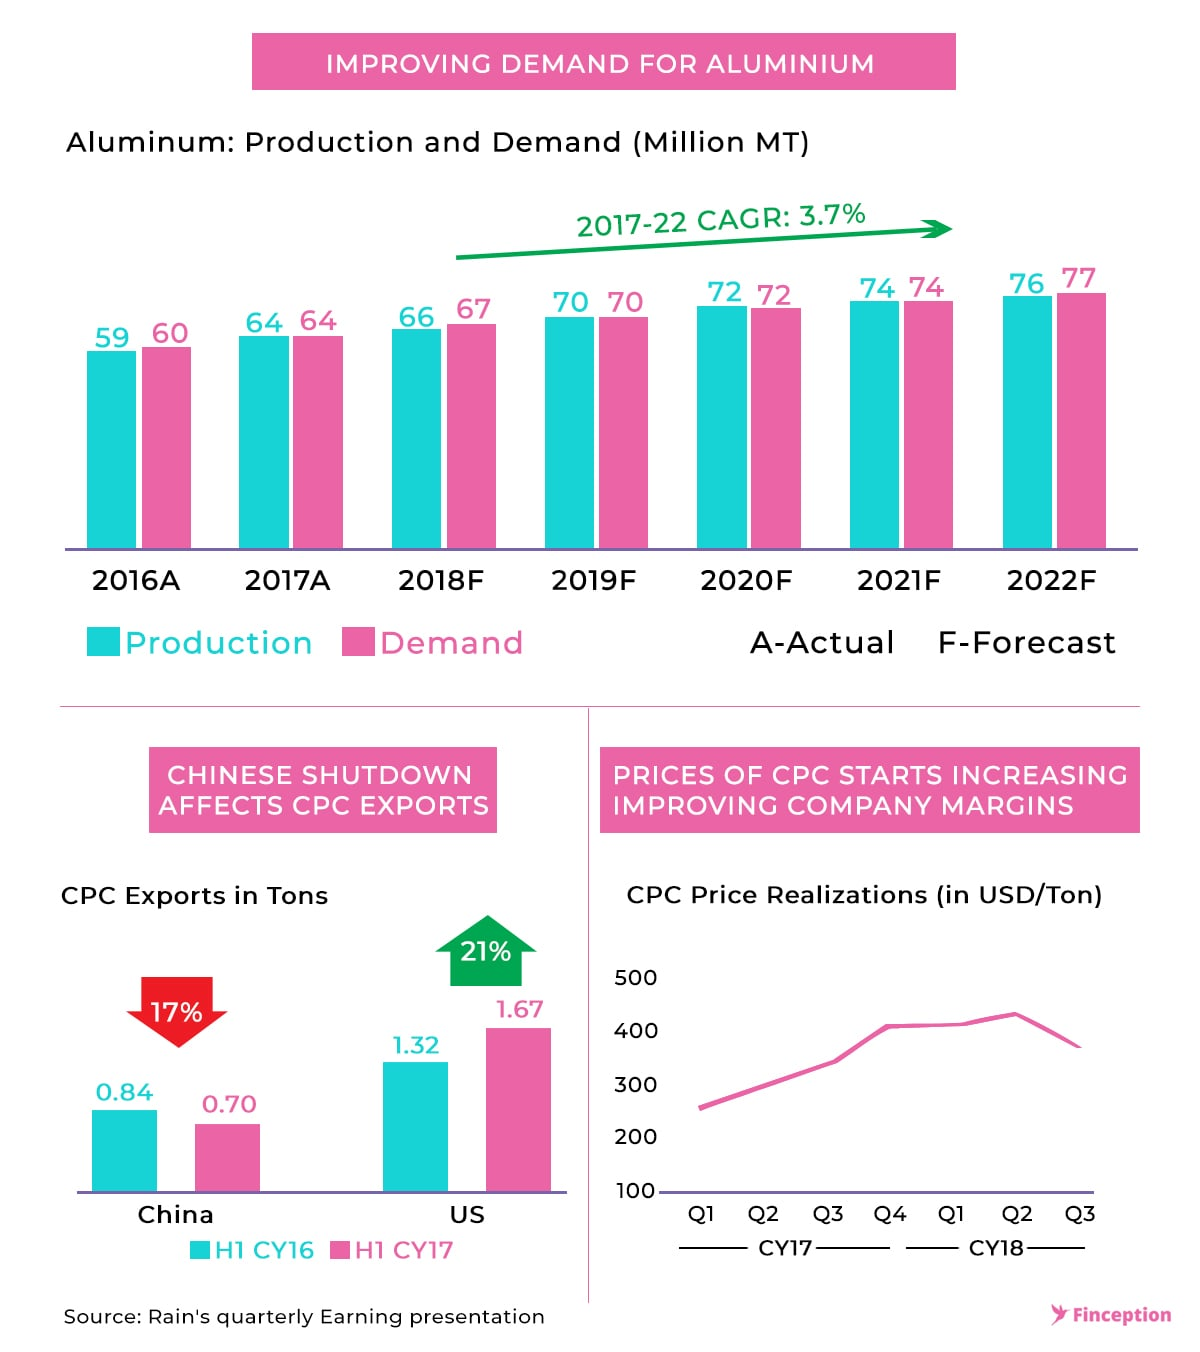 Improving Demand for Aluminium